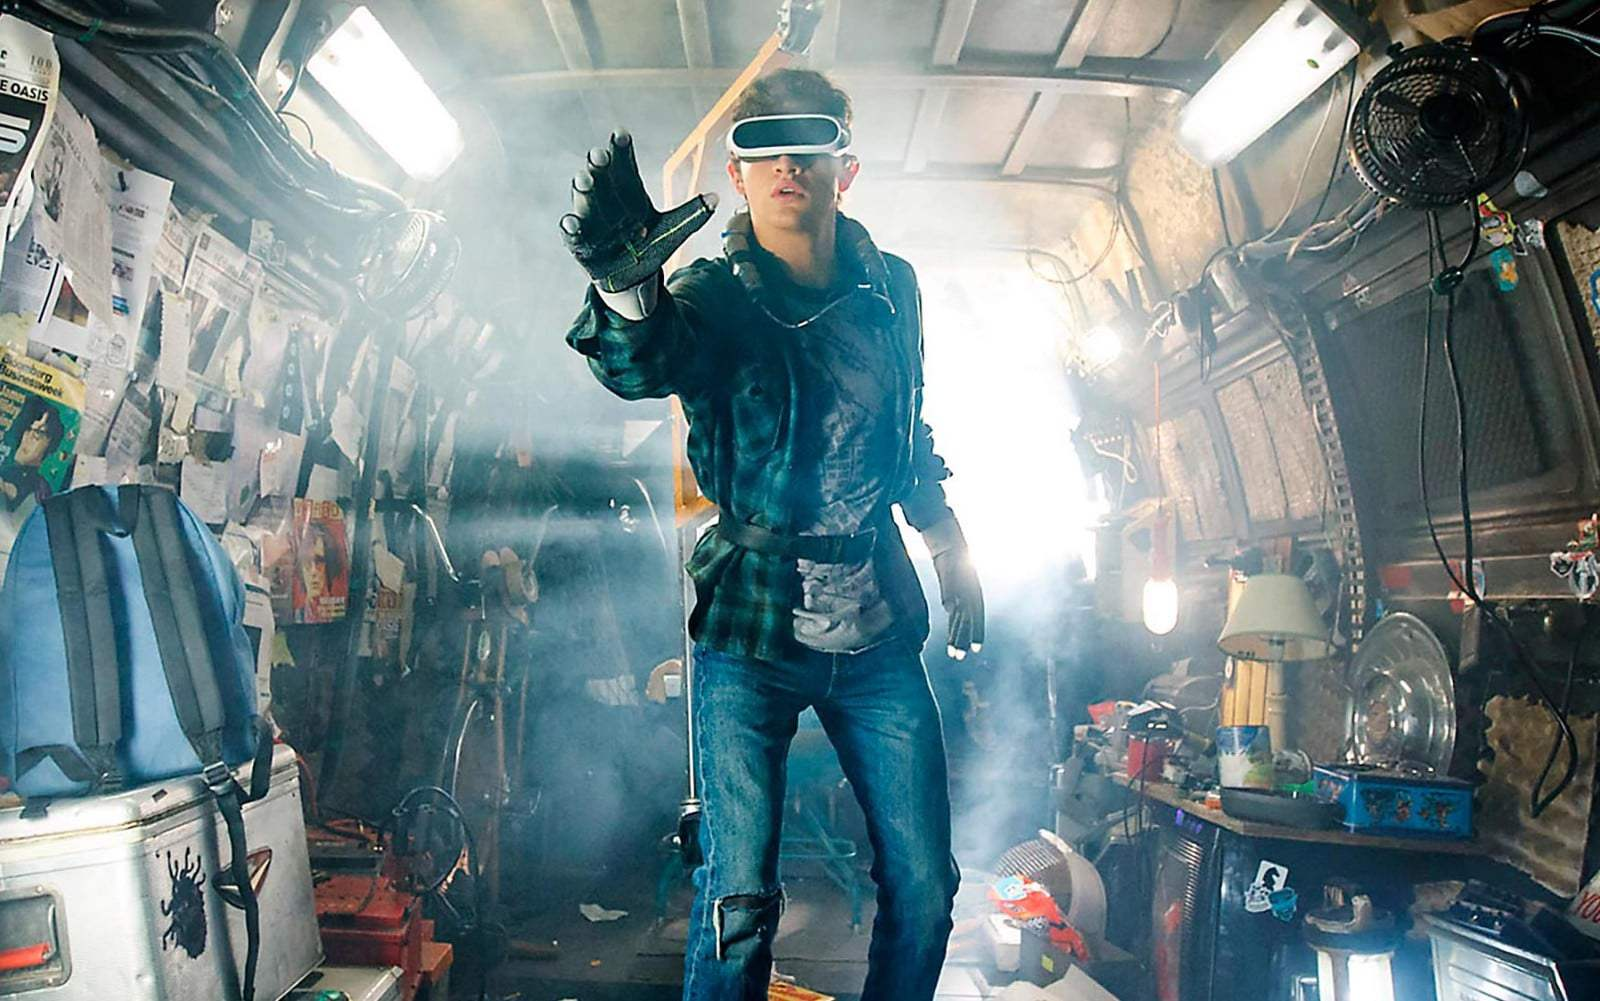 Ready player one: Gameplaybuster post image